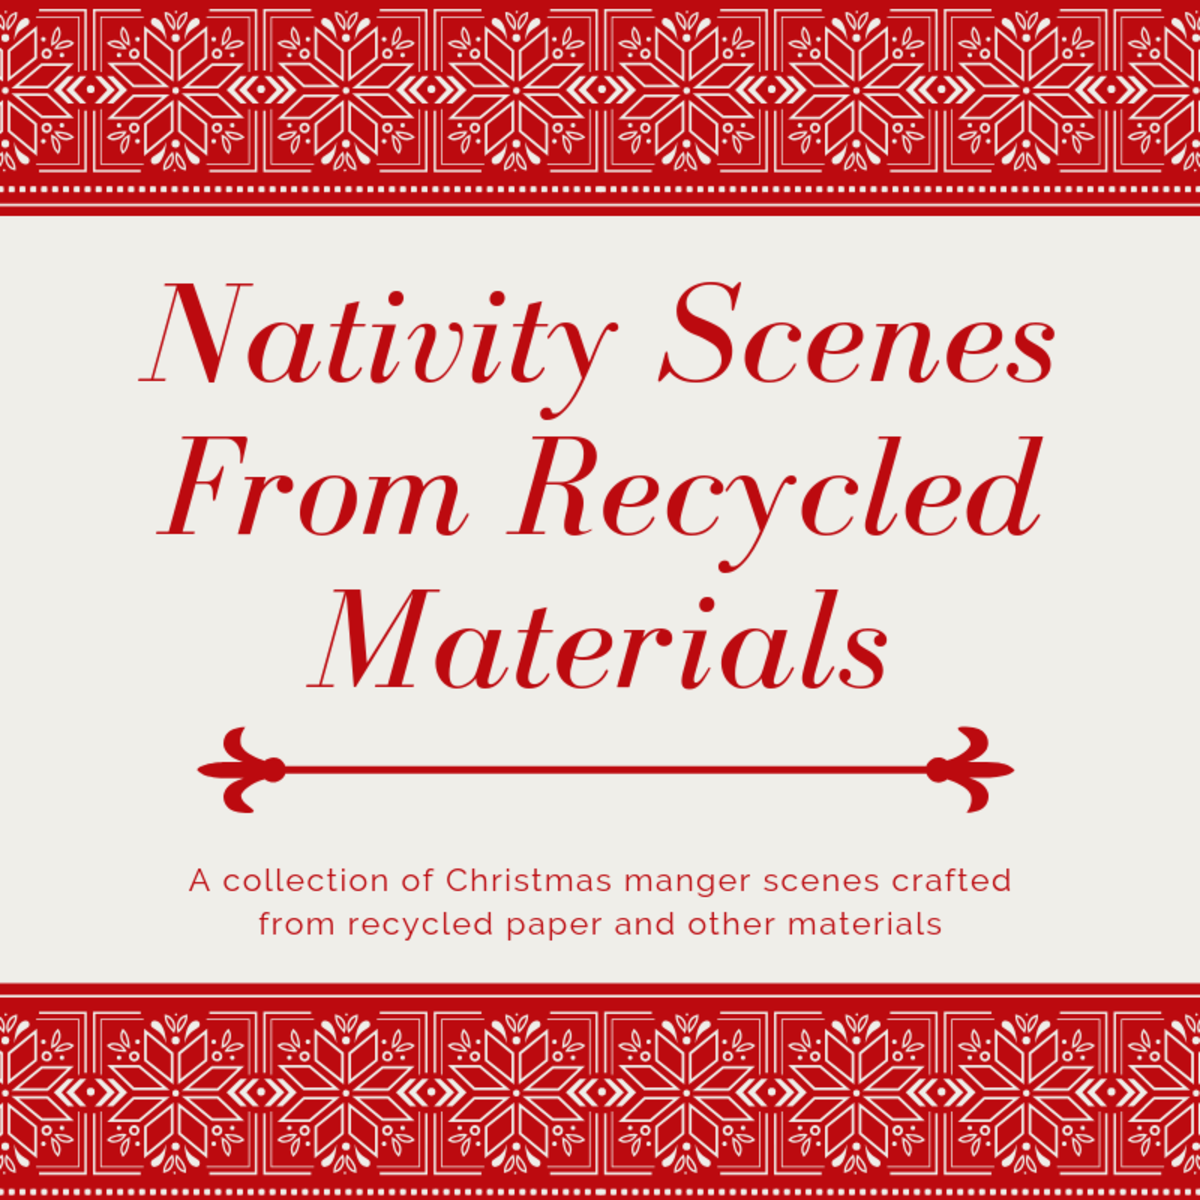 This article will share some creative nativity scenes made from recycled materials.